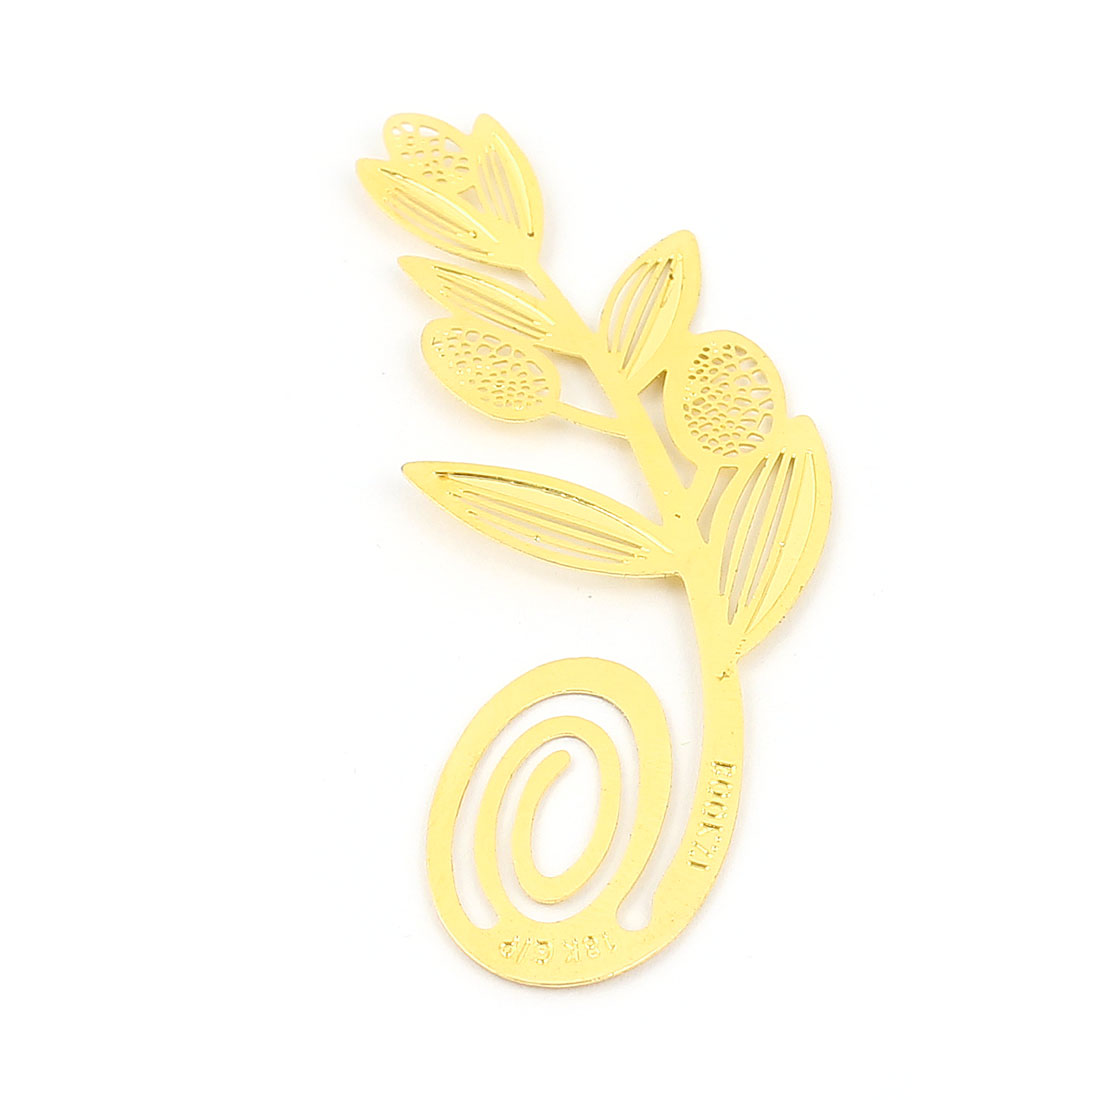 Gold Tone Metal Wheat Bookmark Bookmarker Decoration for Readers